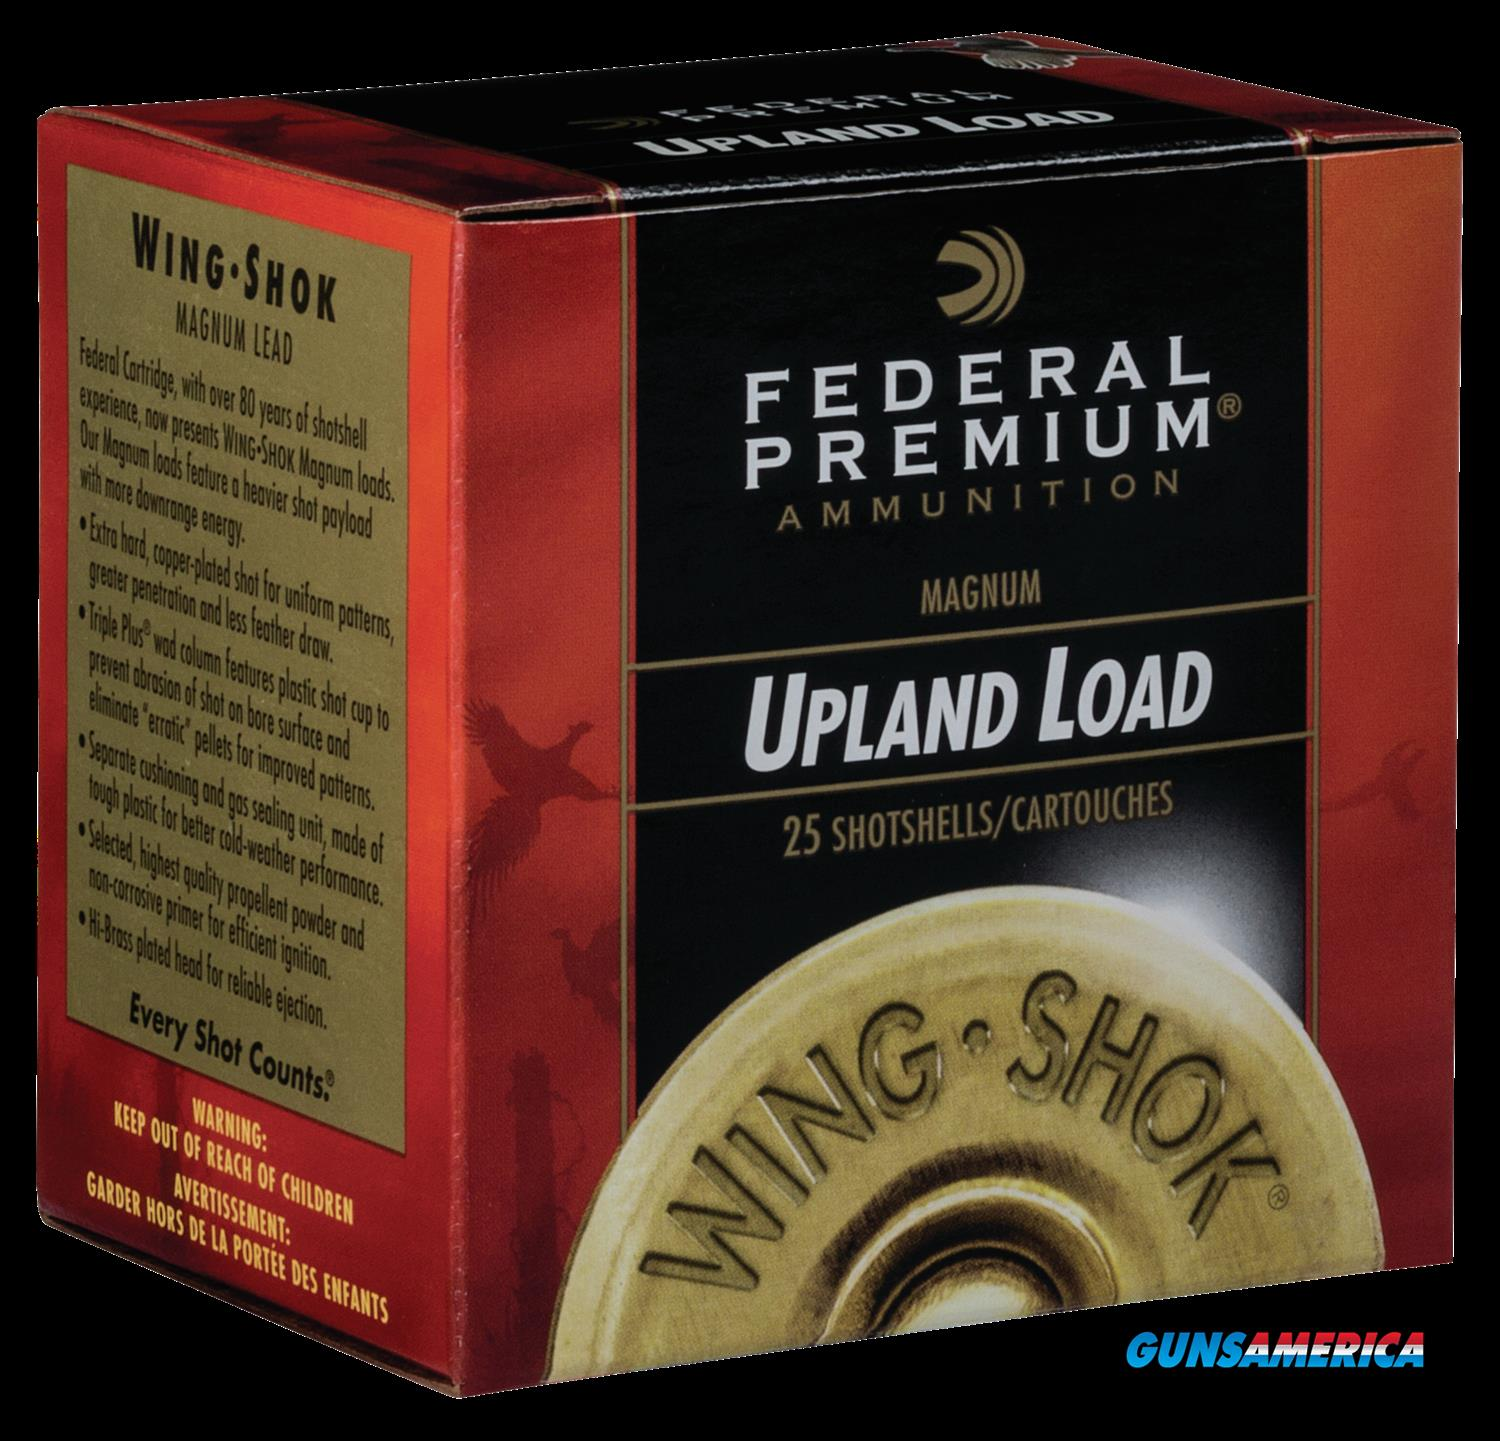 Federal Premium Upland, Fed P2586     Wngshk  20 3in 11-4        25-10  Guns > Pistols > 1911 Pistol Copies (non-Colt)